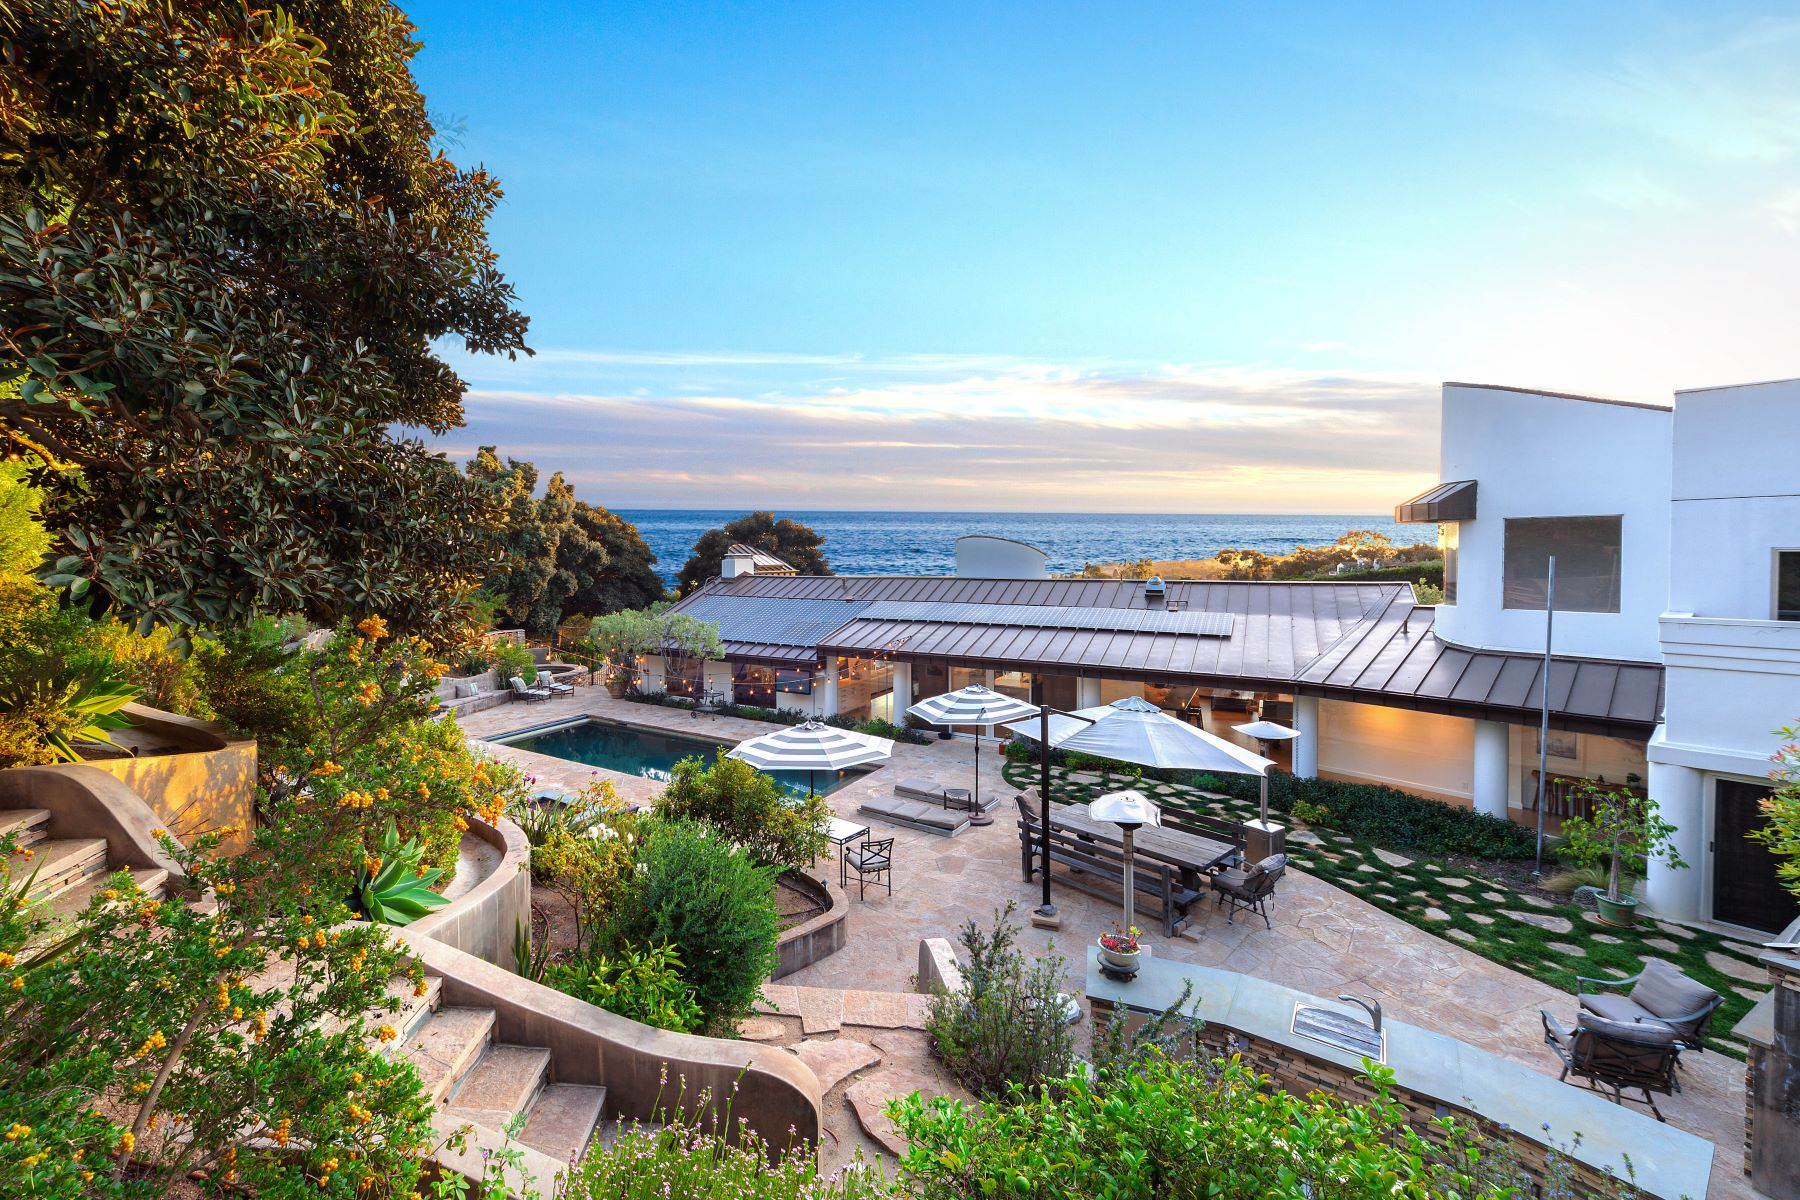 Property for Sale at Malibu Ocean View Estate With Pool 27725 Winding Way Malibu, California 90265 United States